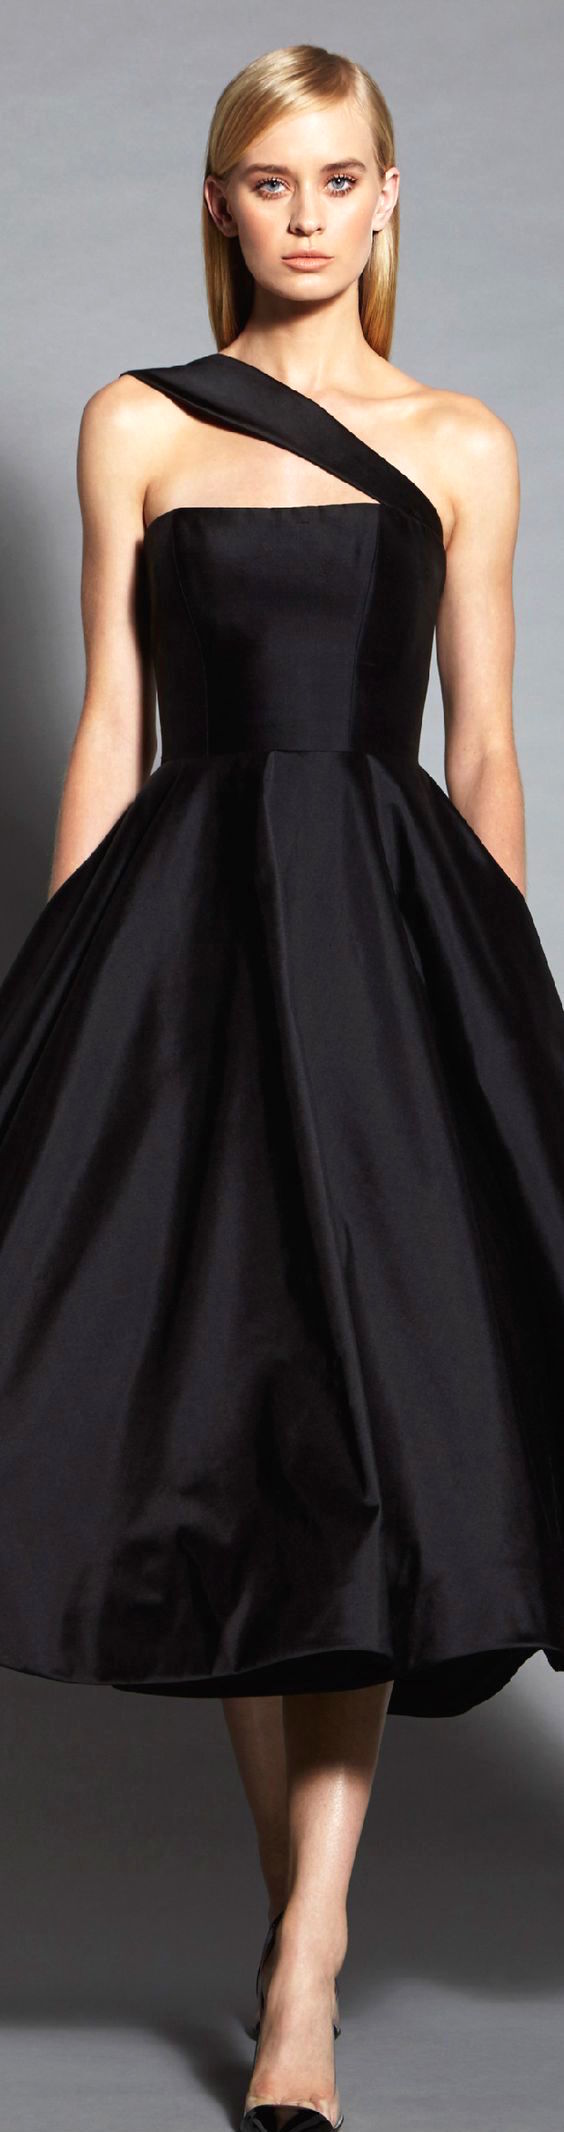 Absolutely breathtaking and elegant black dress by Romona Keveza.